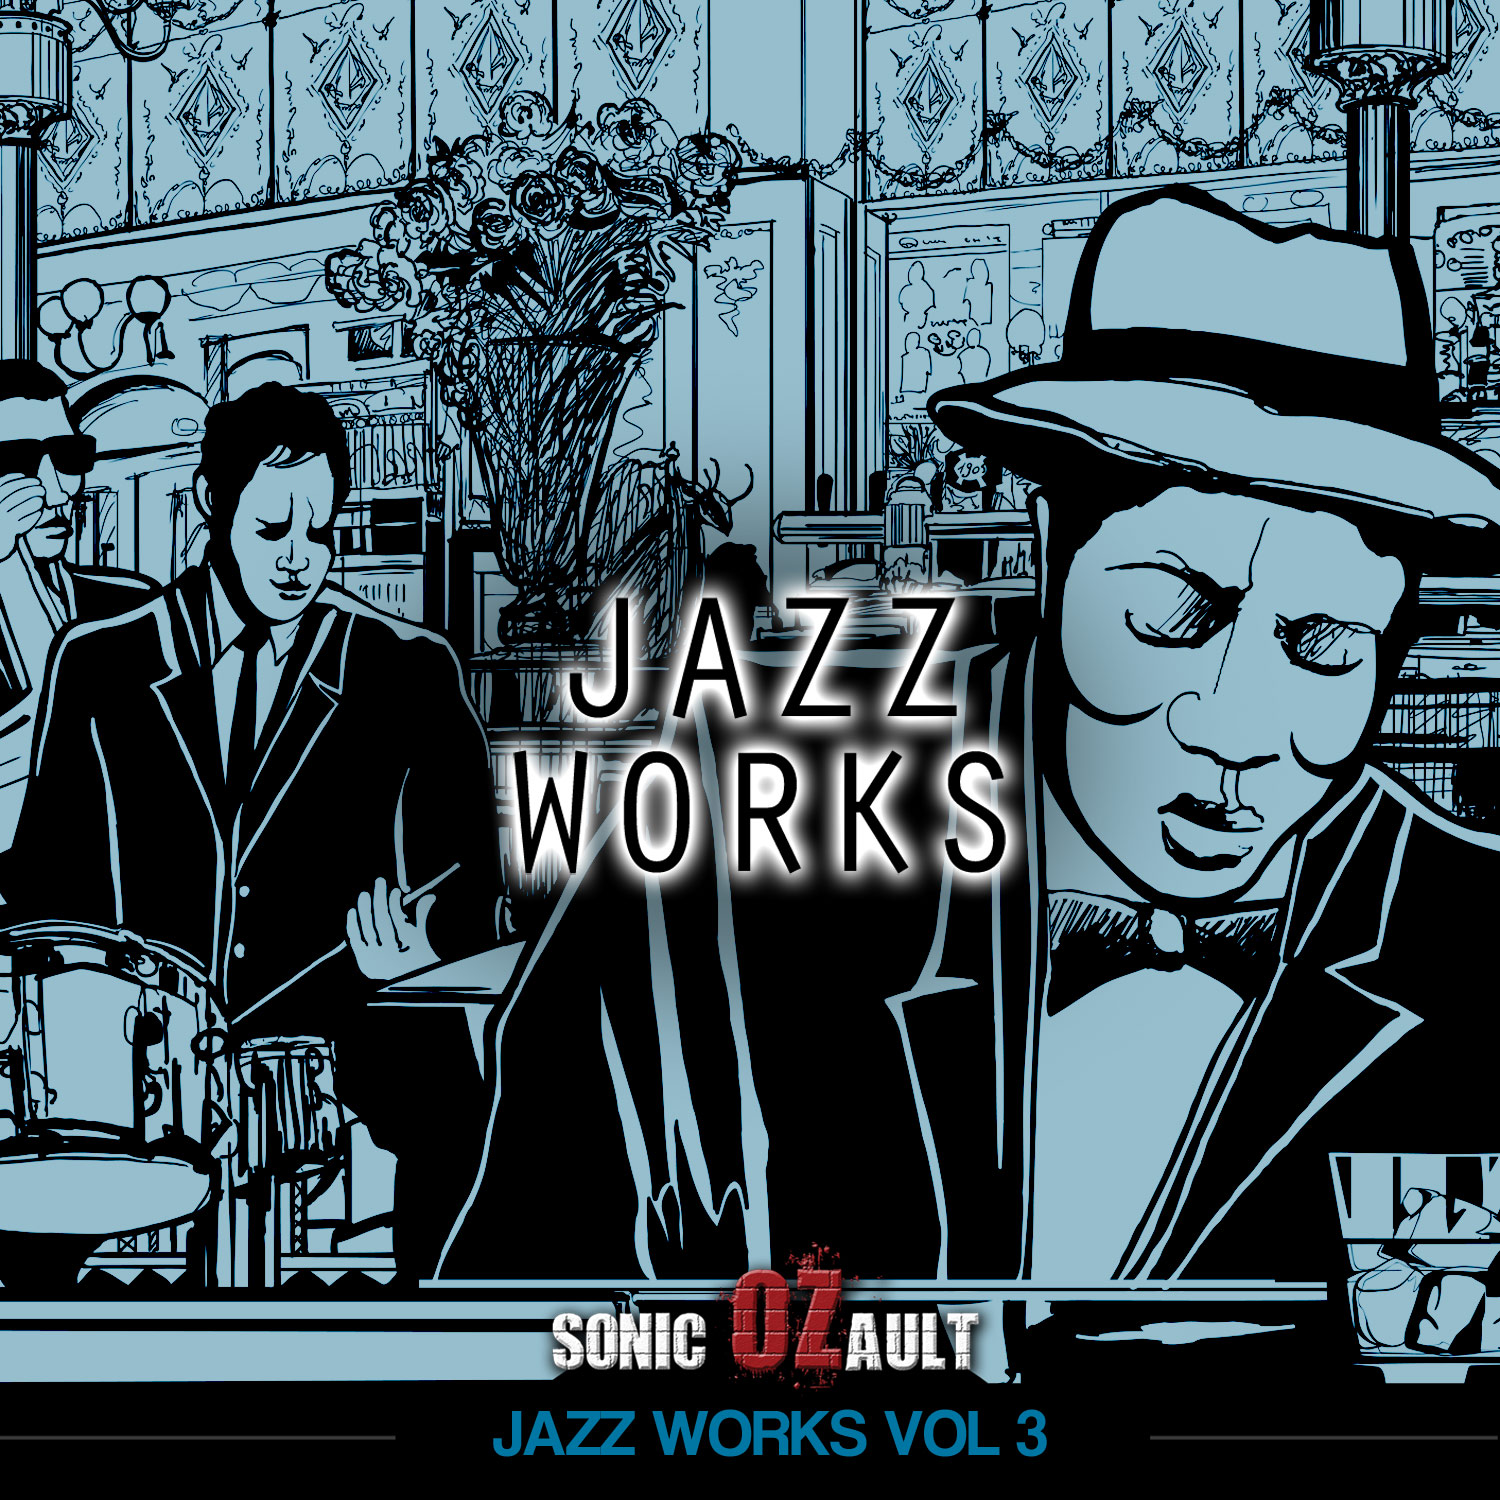 Jazz Works Vol 3